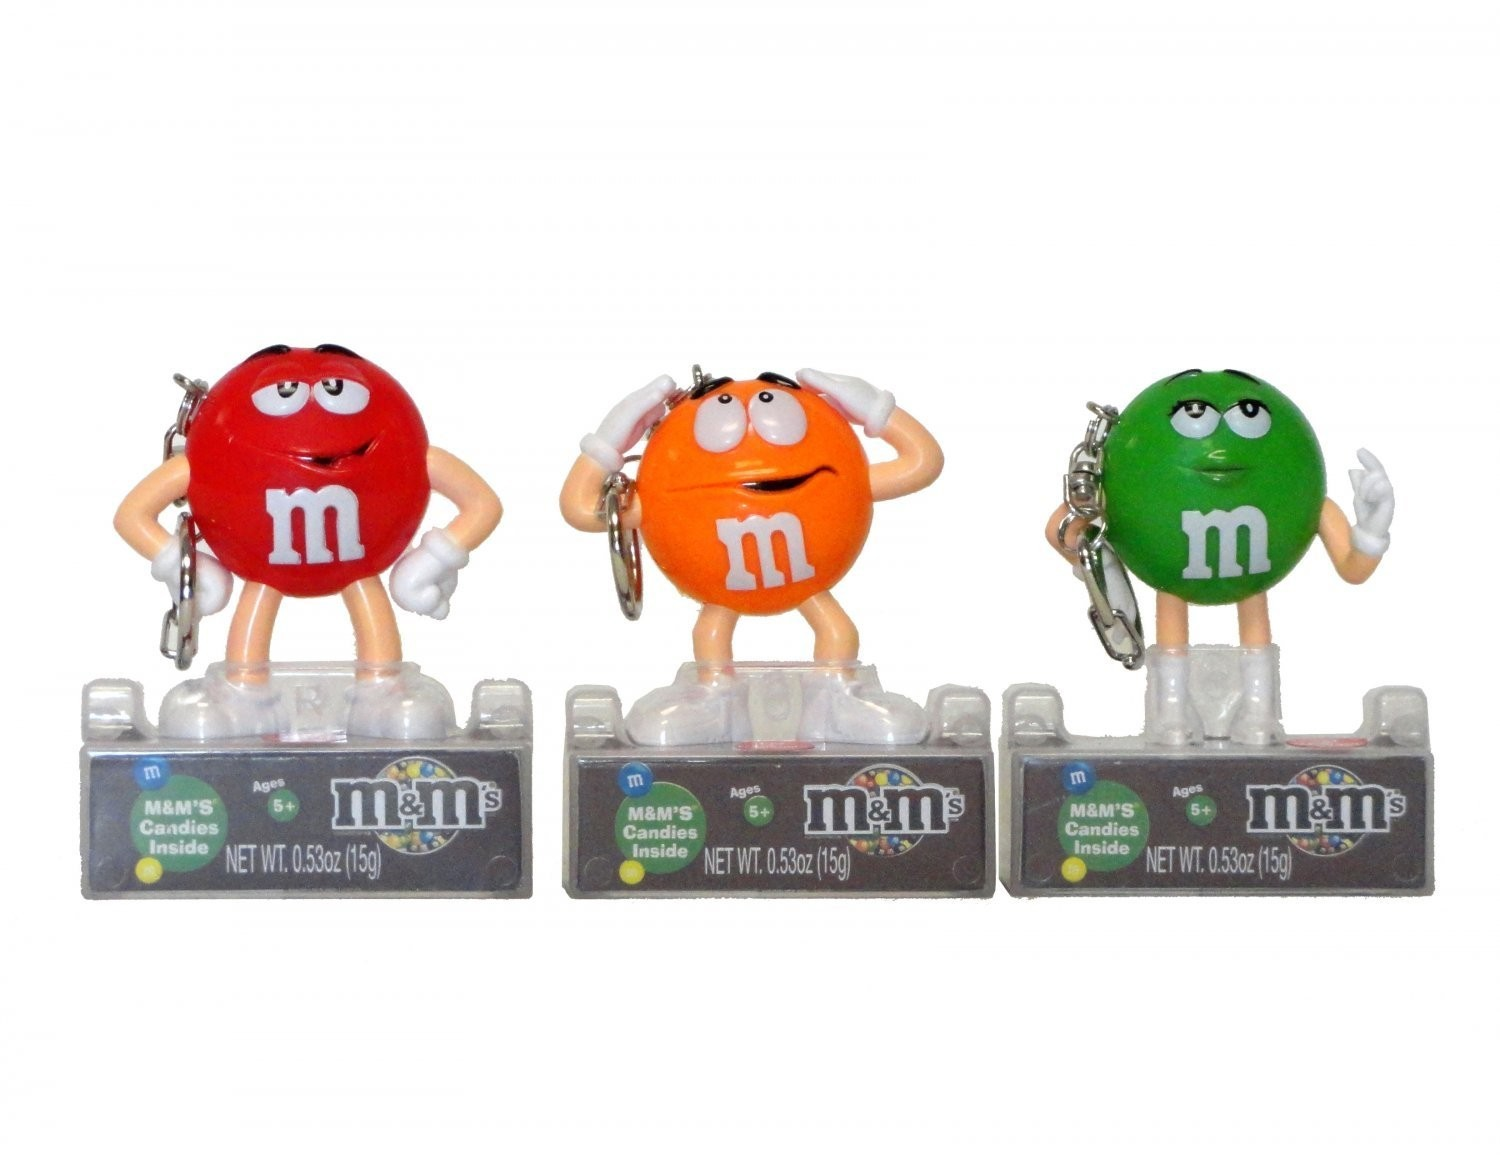 M&M's M&M'S ® Character Keychain with clip